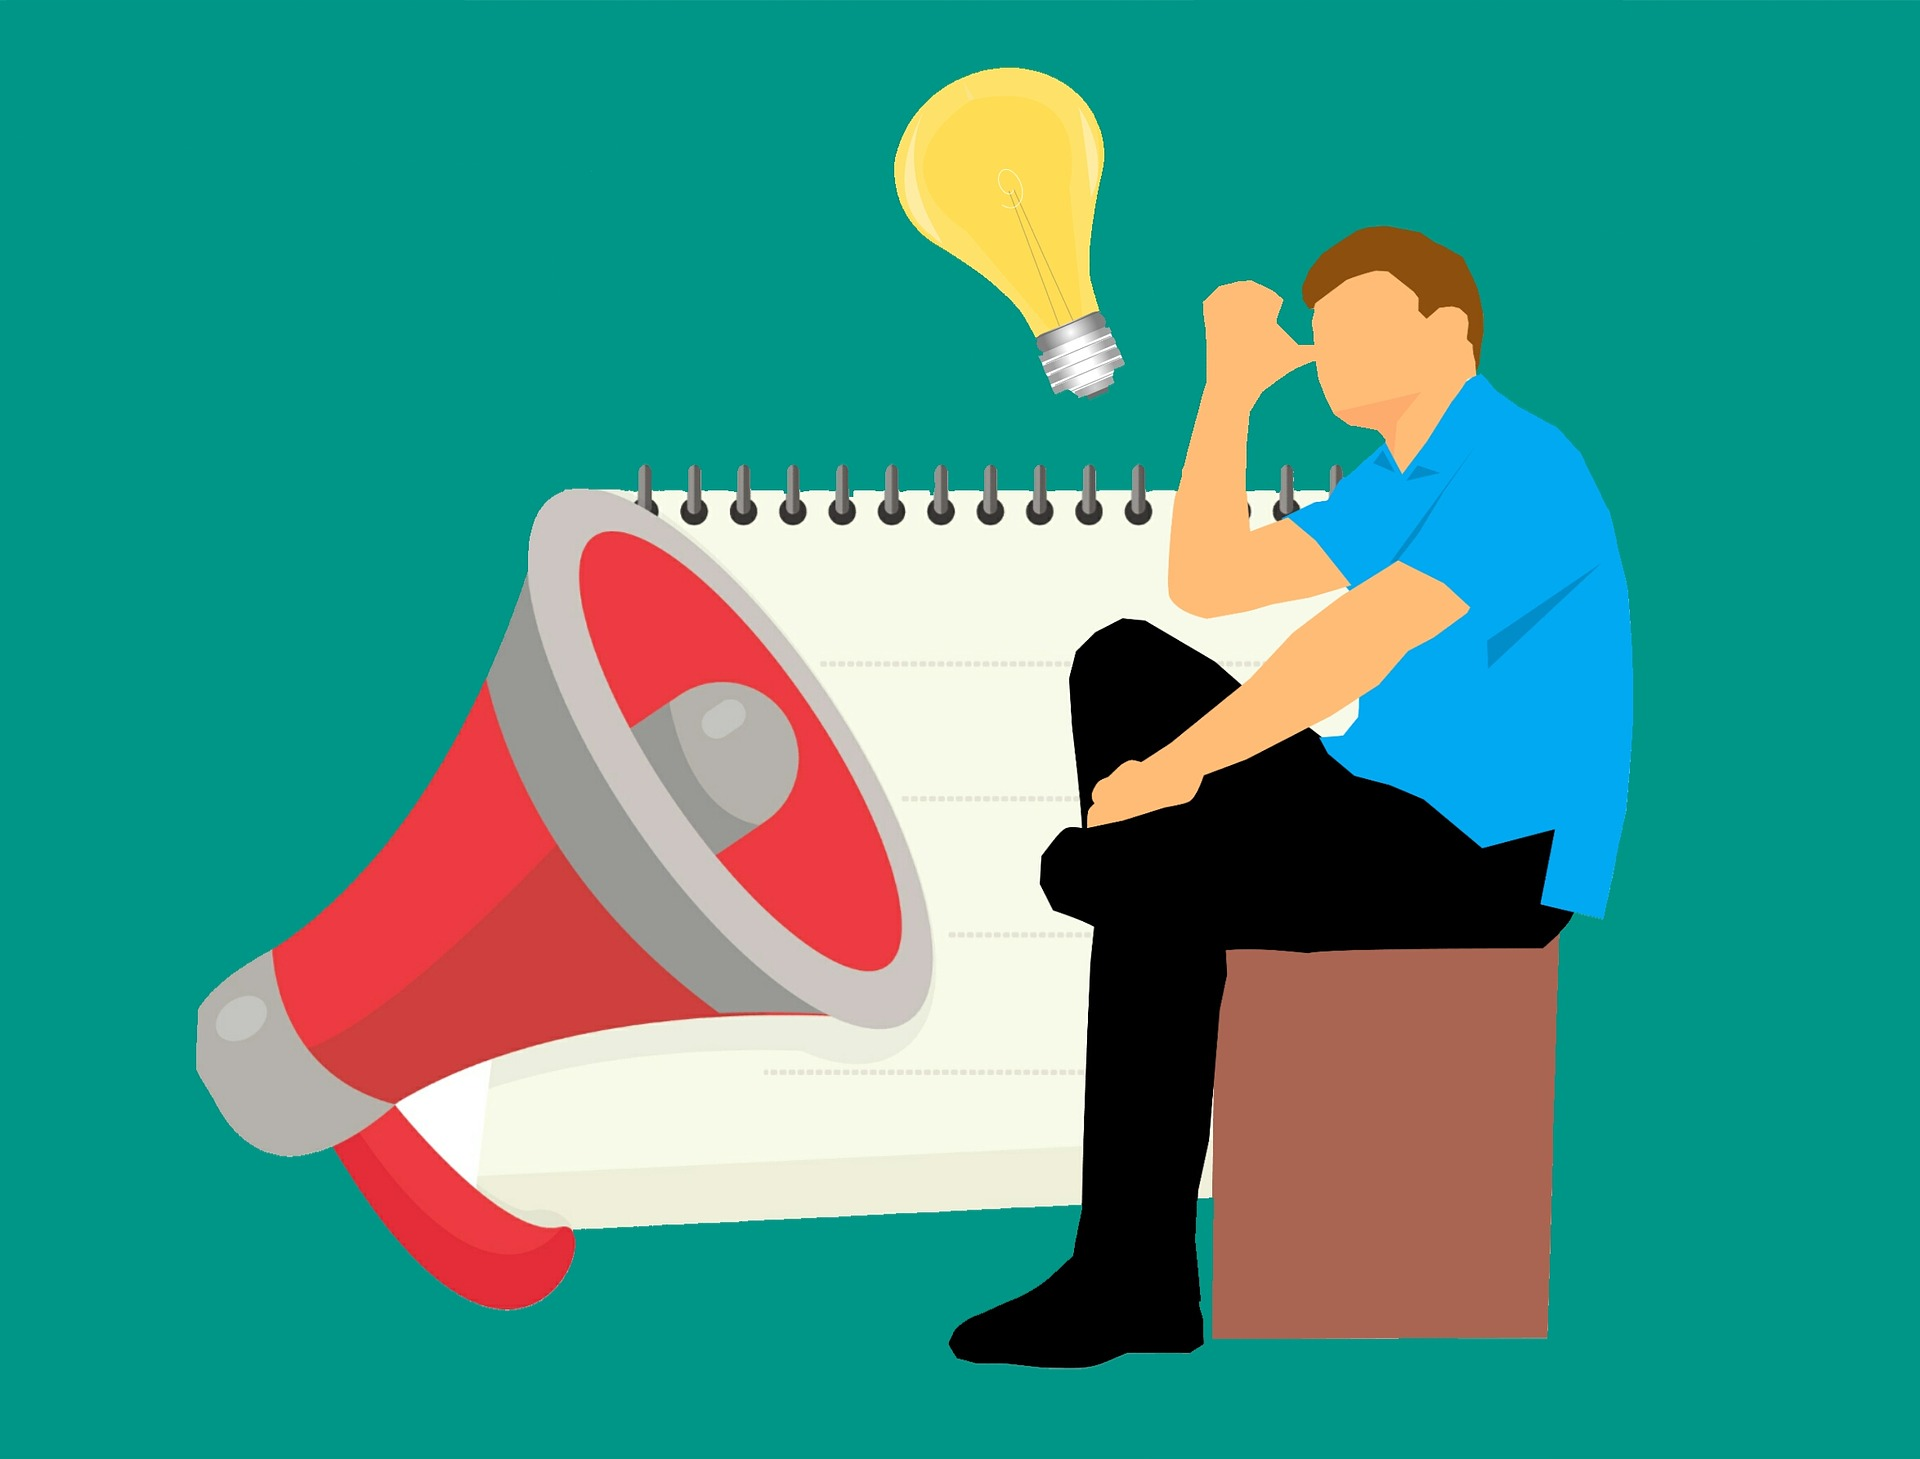 graphic of man sitting with megaphone